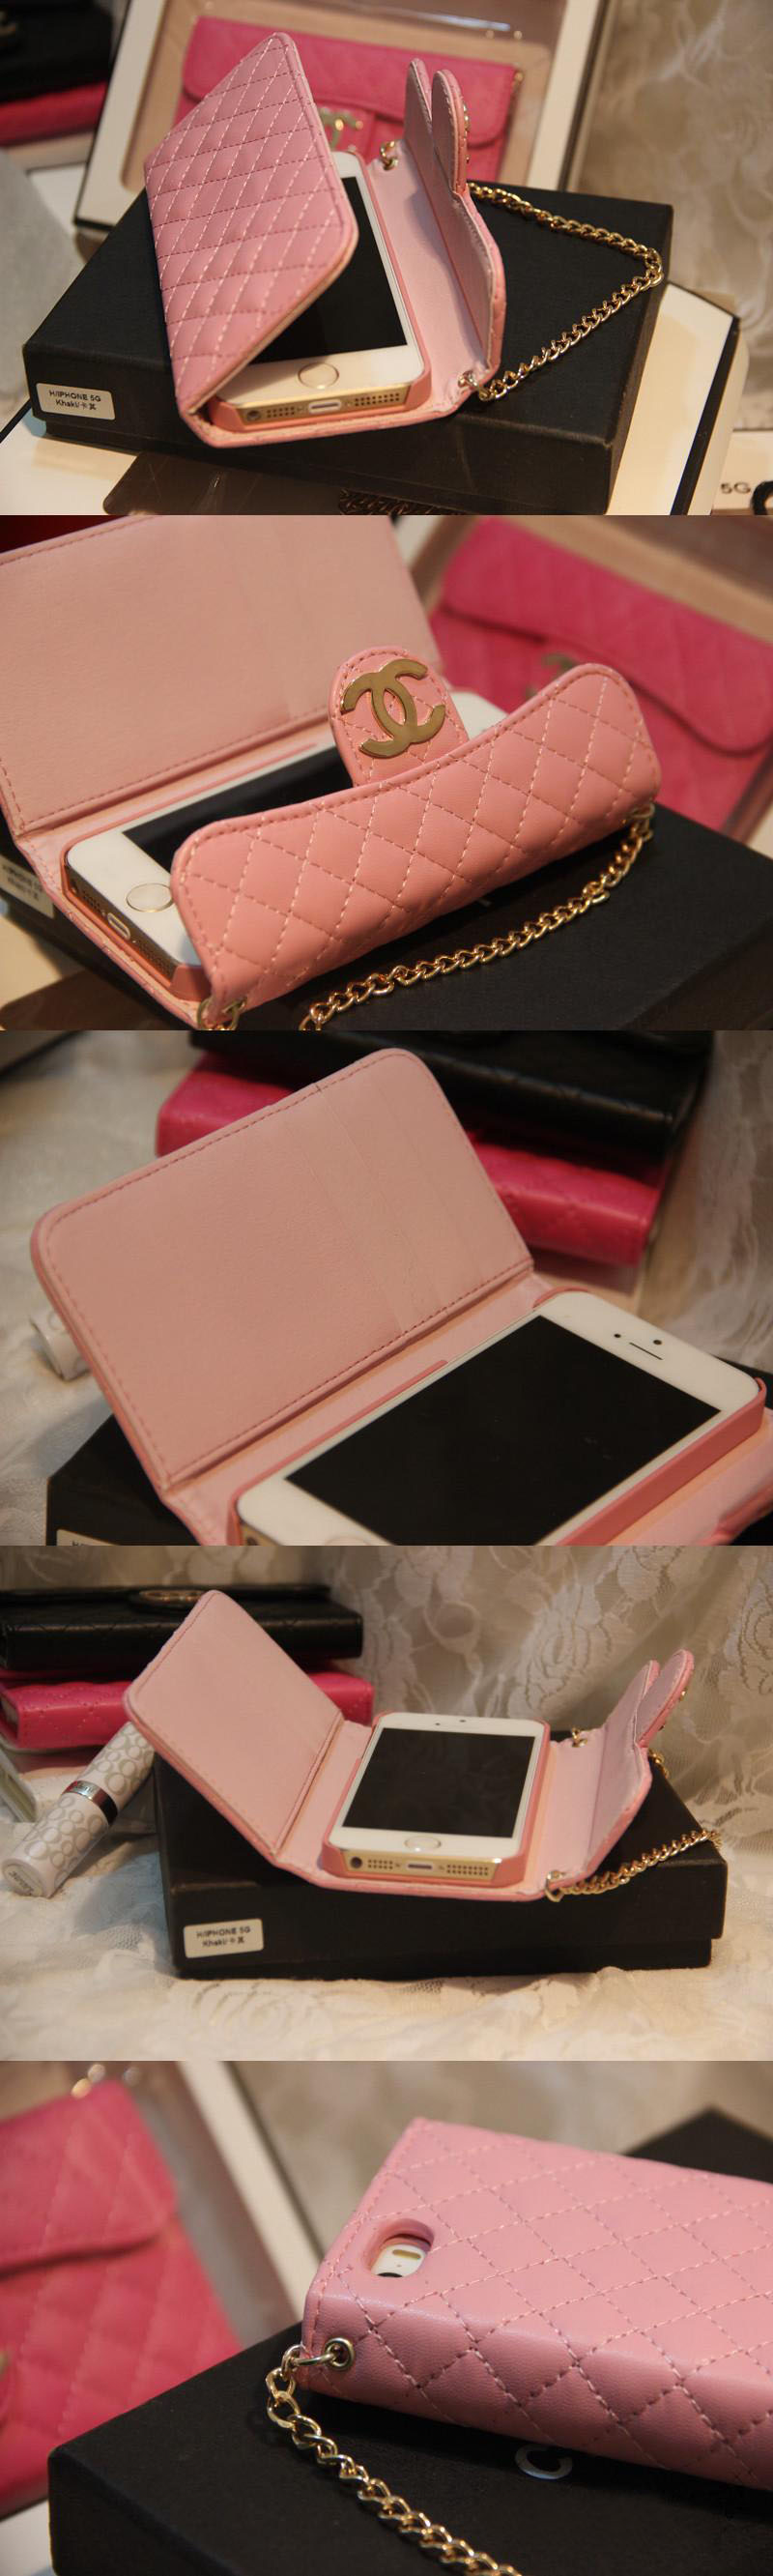 iphone klapphülle case für iphone Chanel iphone6 plus hülle wann kommt das iphone 6 auf den markt piphone 6 Plus i pohne 6 ledertasche für iphone 6 Plus iphone 6 Plusx zubehör iphone 6 Plus